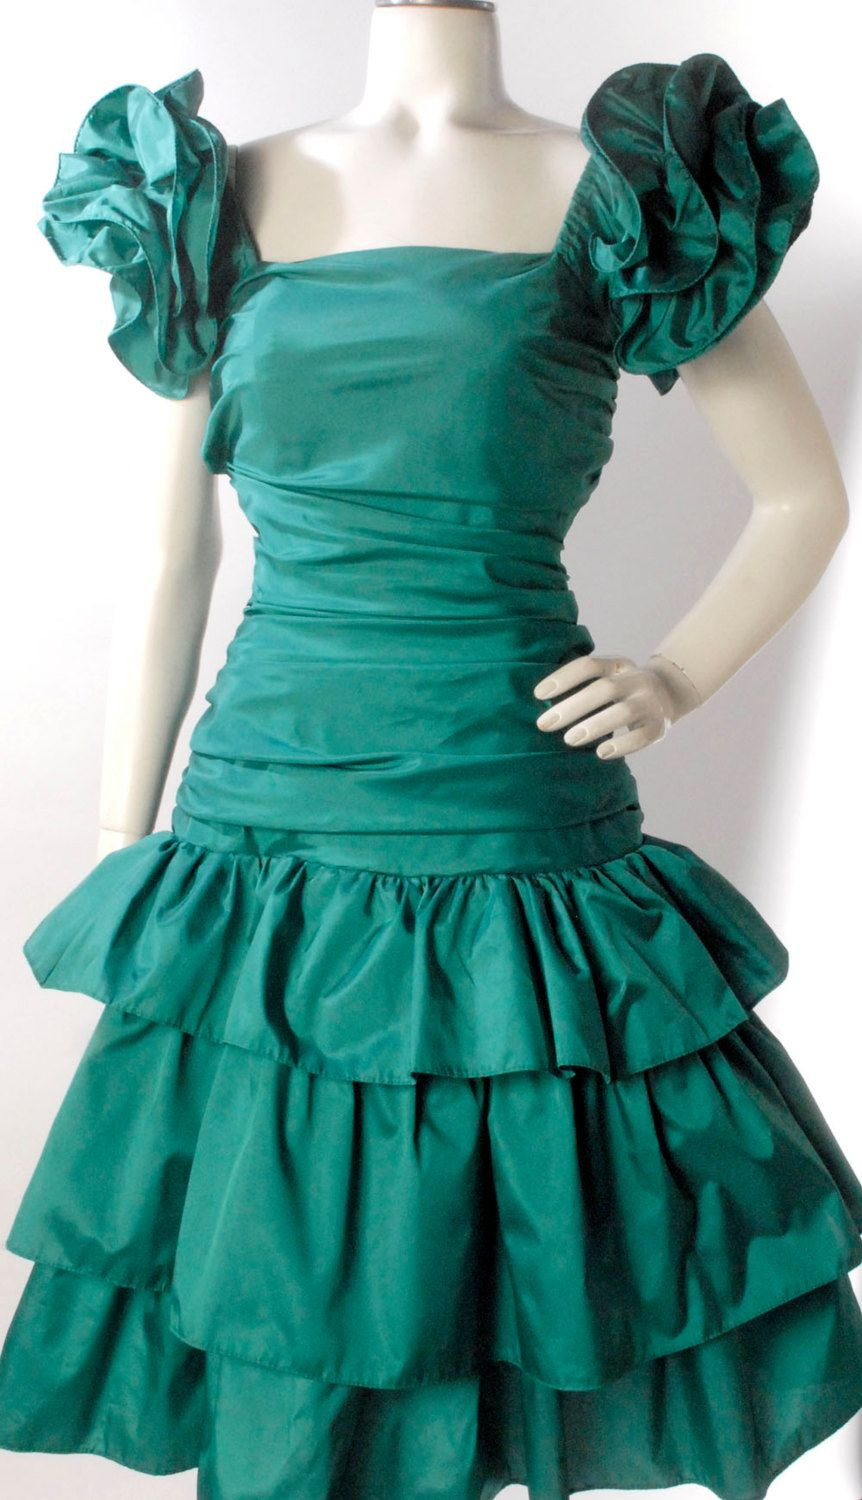 Vintage 80s Dress - 80s Prom Dress - Green Prom Dress ... | 862 x 1500 jpeg 152kB